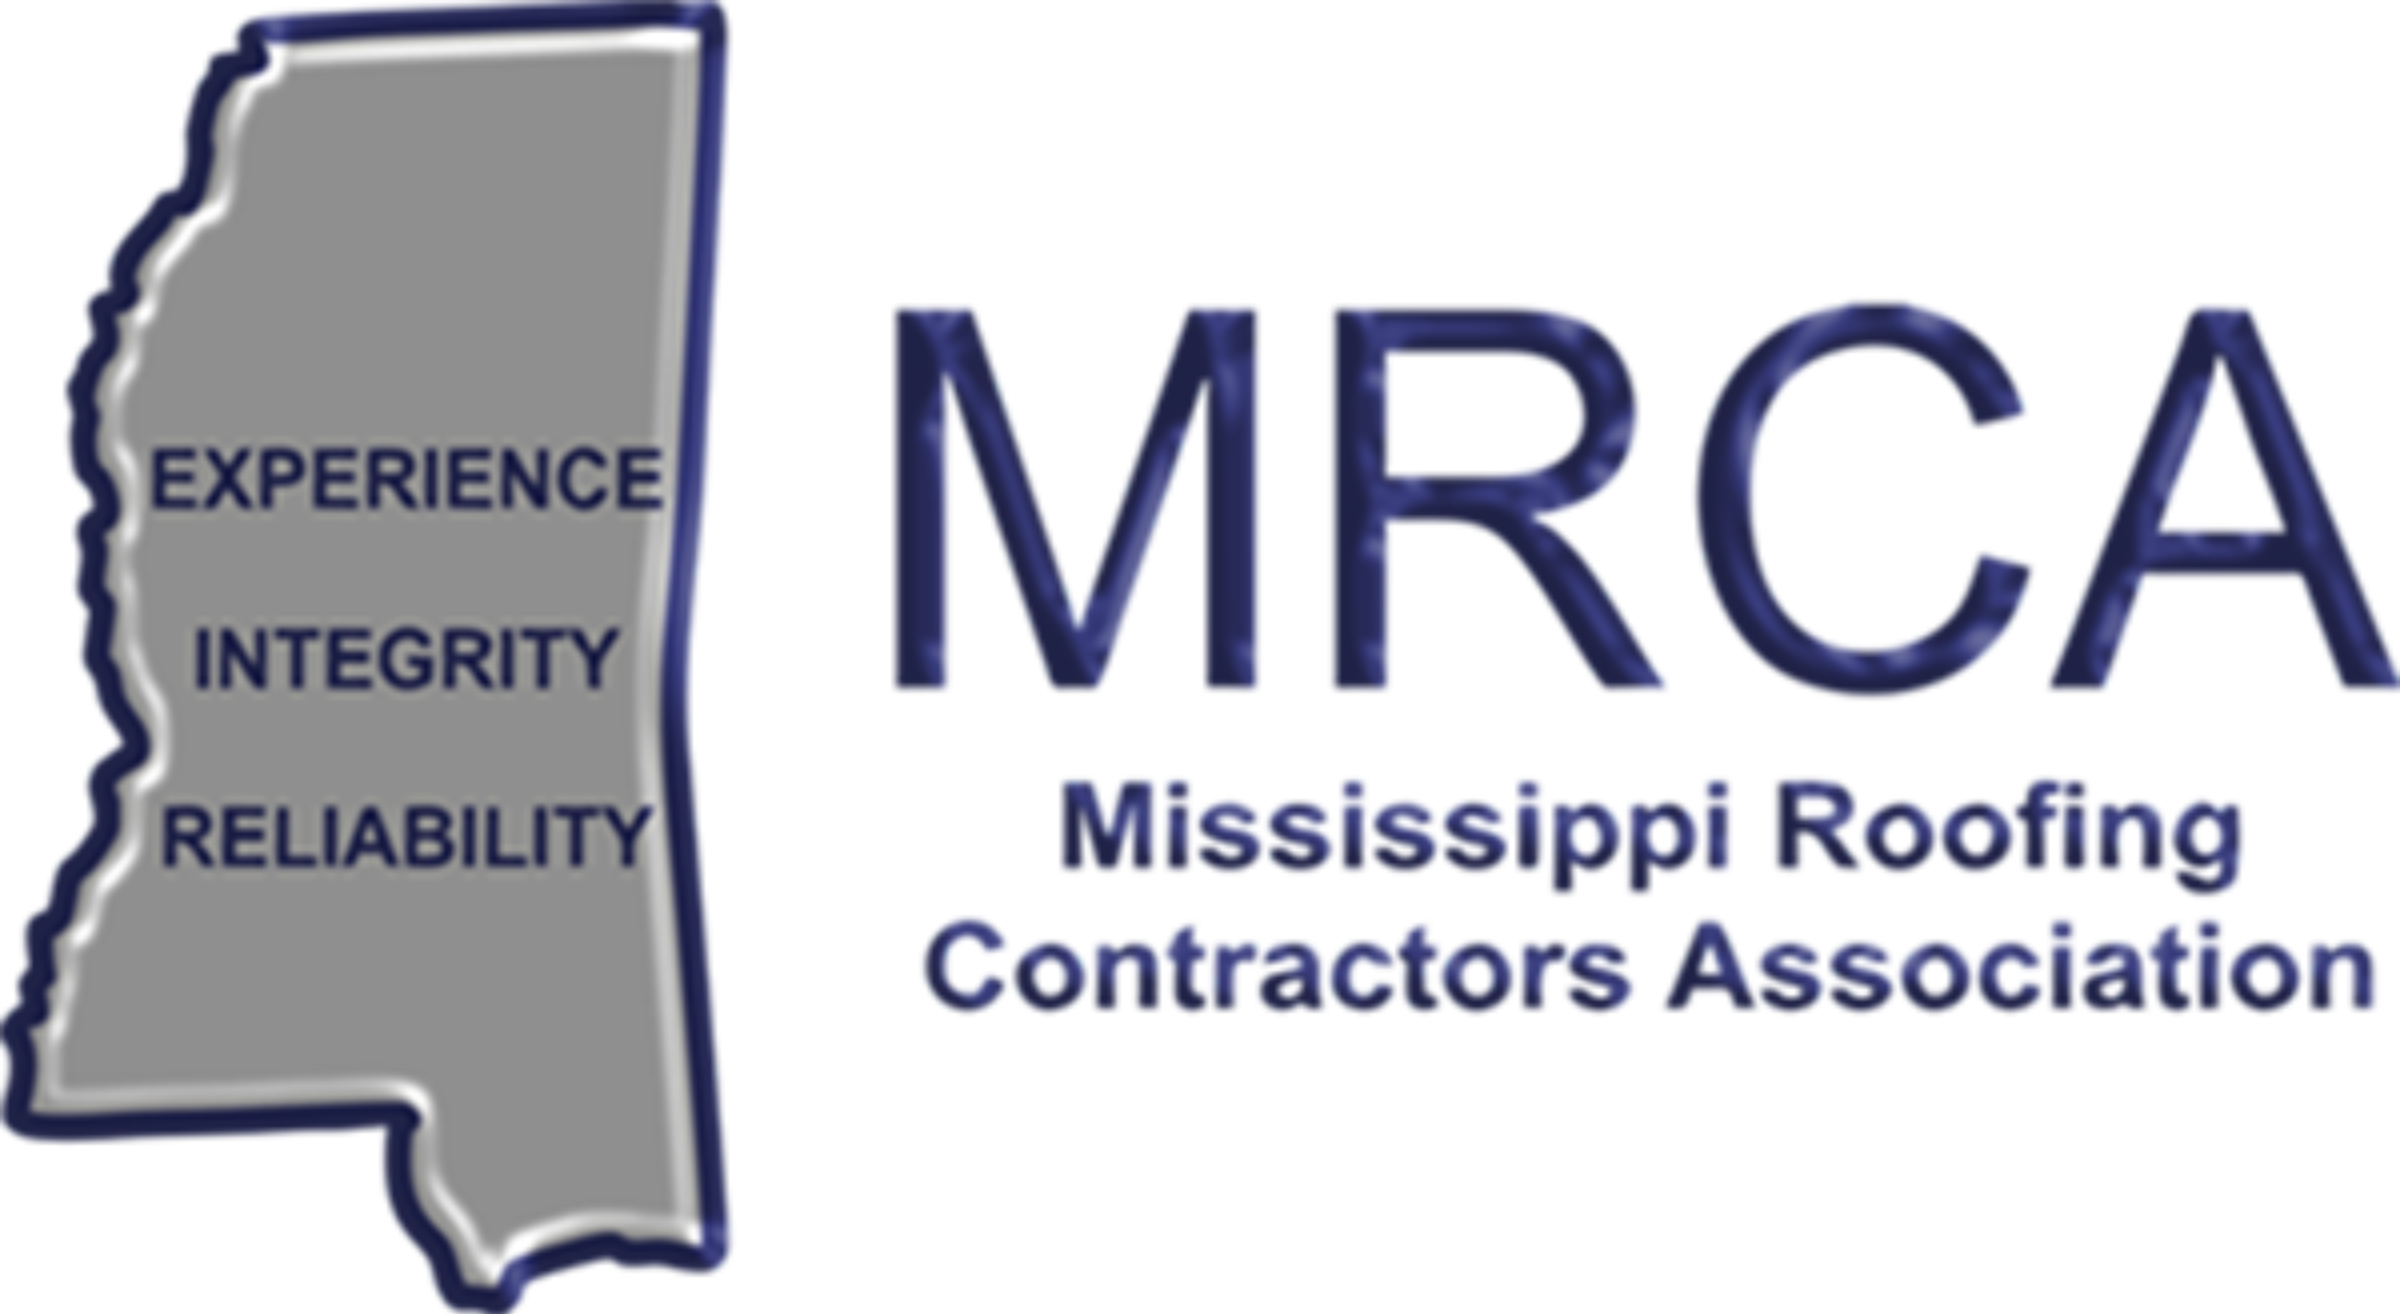 https://mrca-mississippi.com/wp-content/uploads/2017/10/cropped-cropped-MRCA-logo-in-blue-for-website-STYLIZED-2-1.png